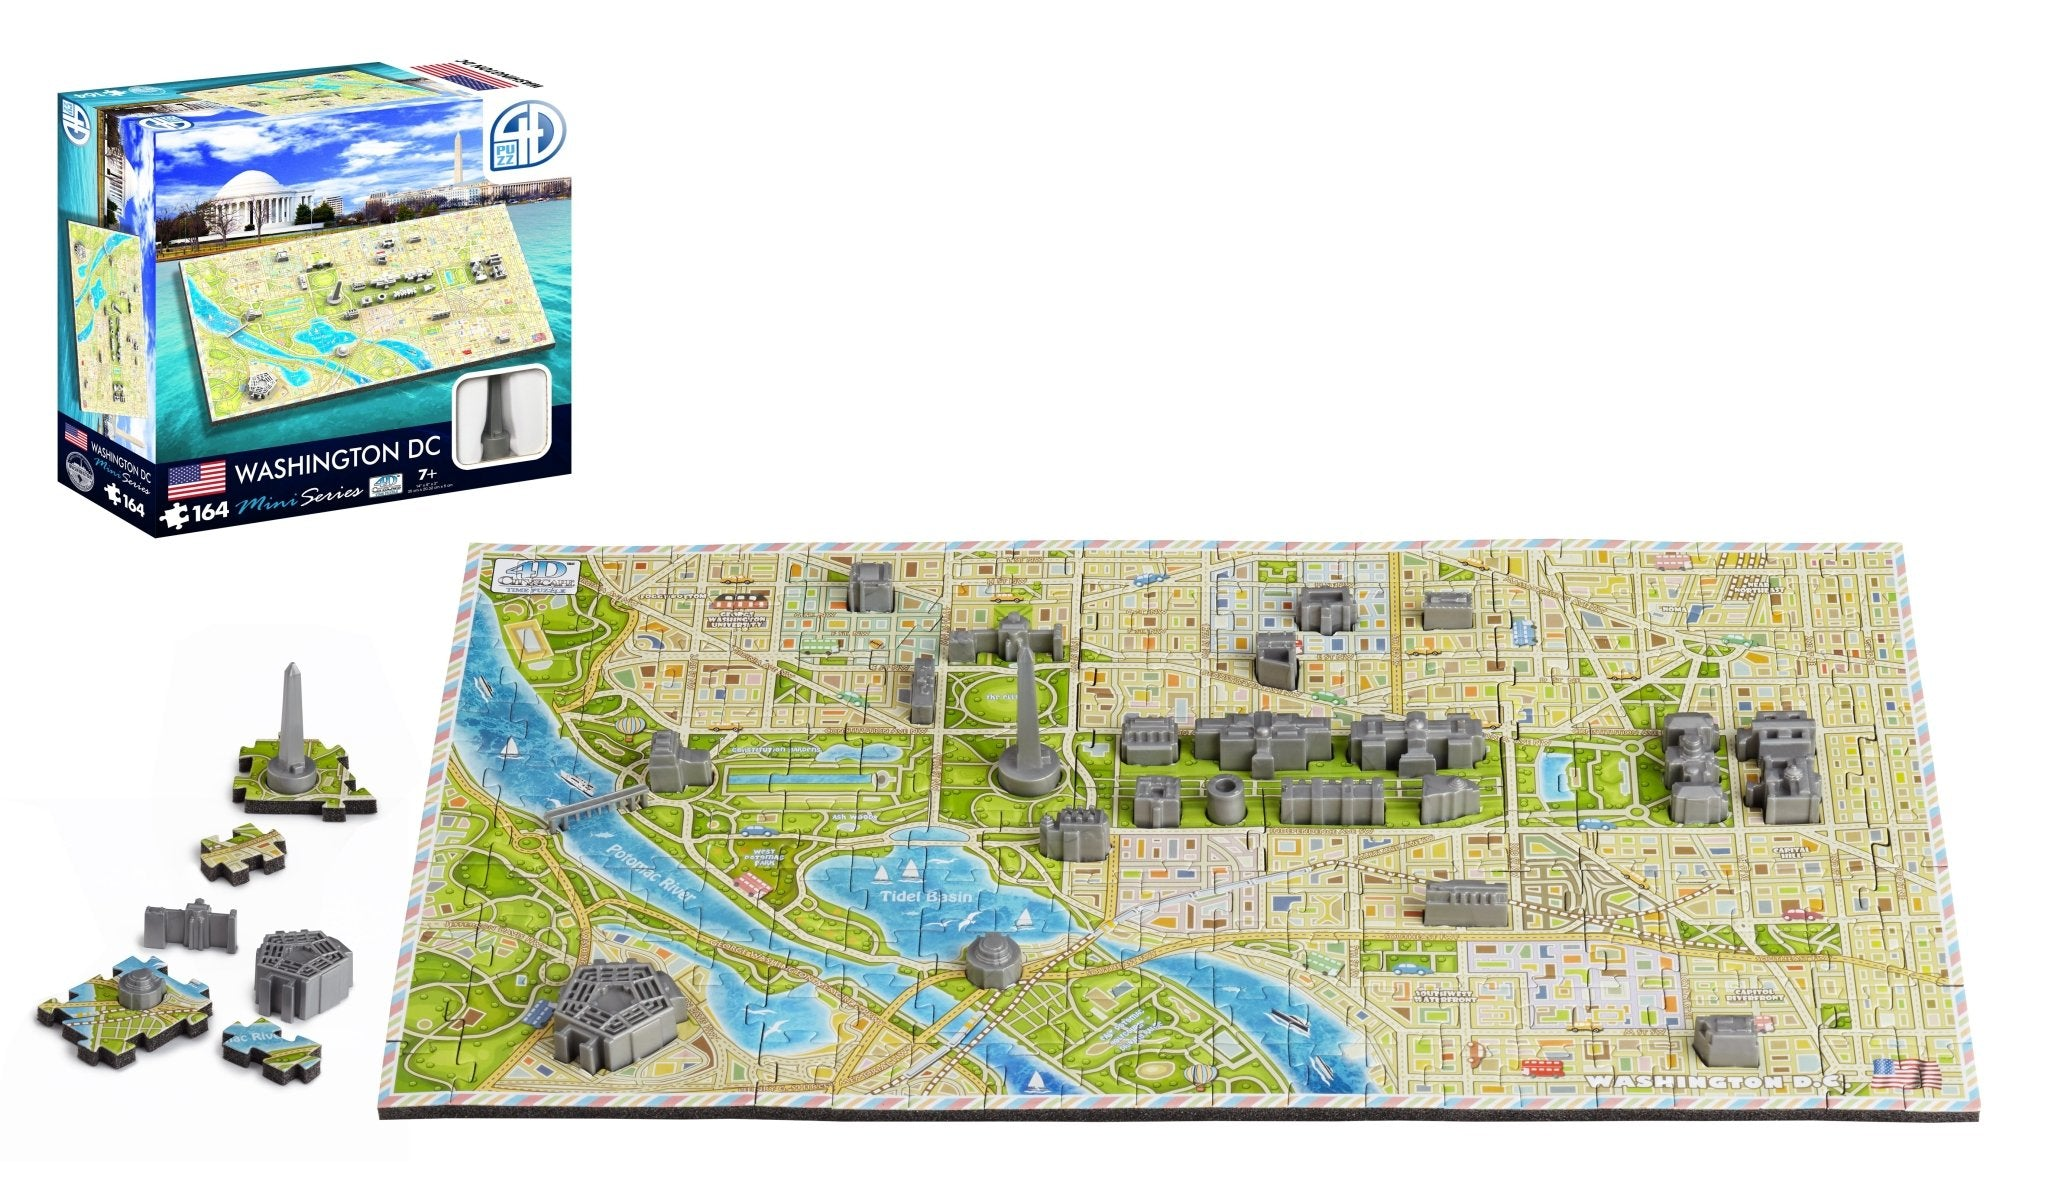 4D Cityscape Mini Washington DC Puzzle - 4DPuzz - 4DPuzz